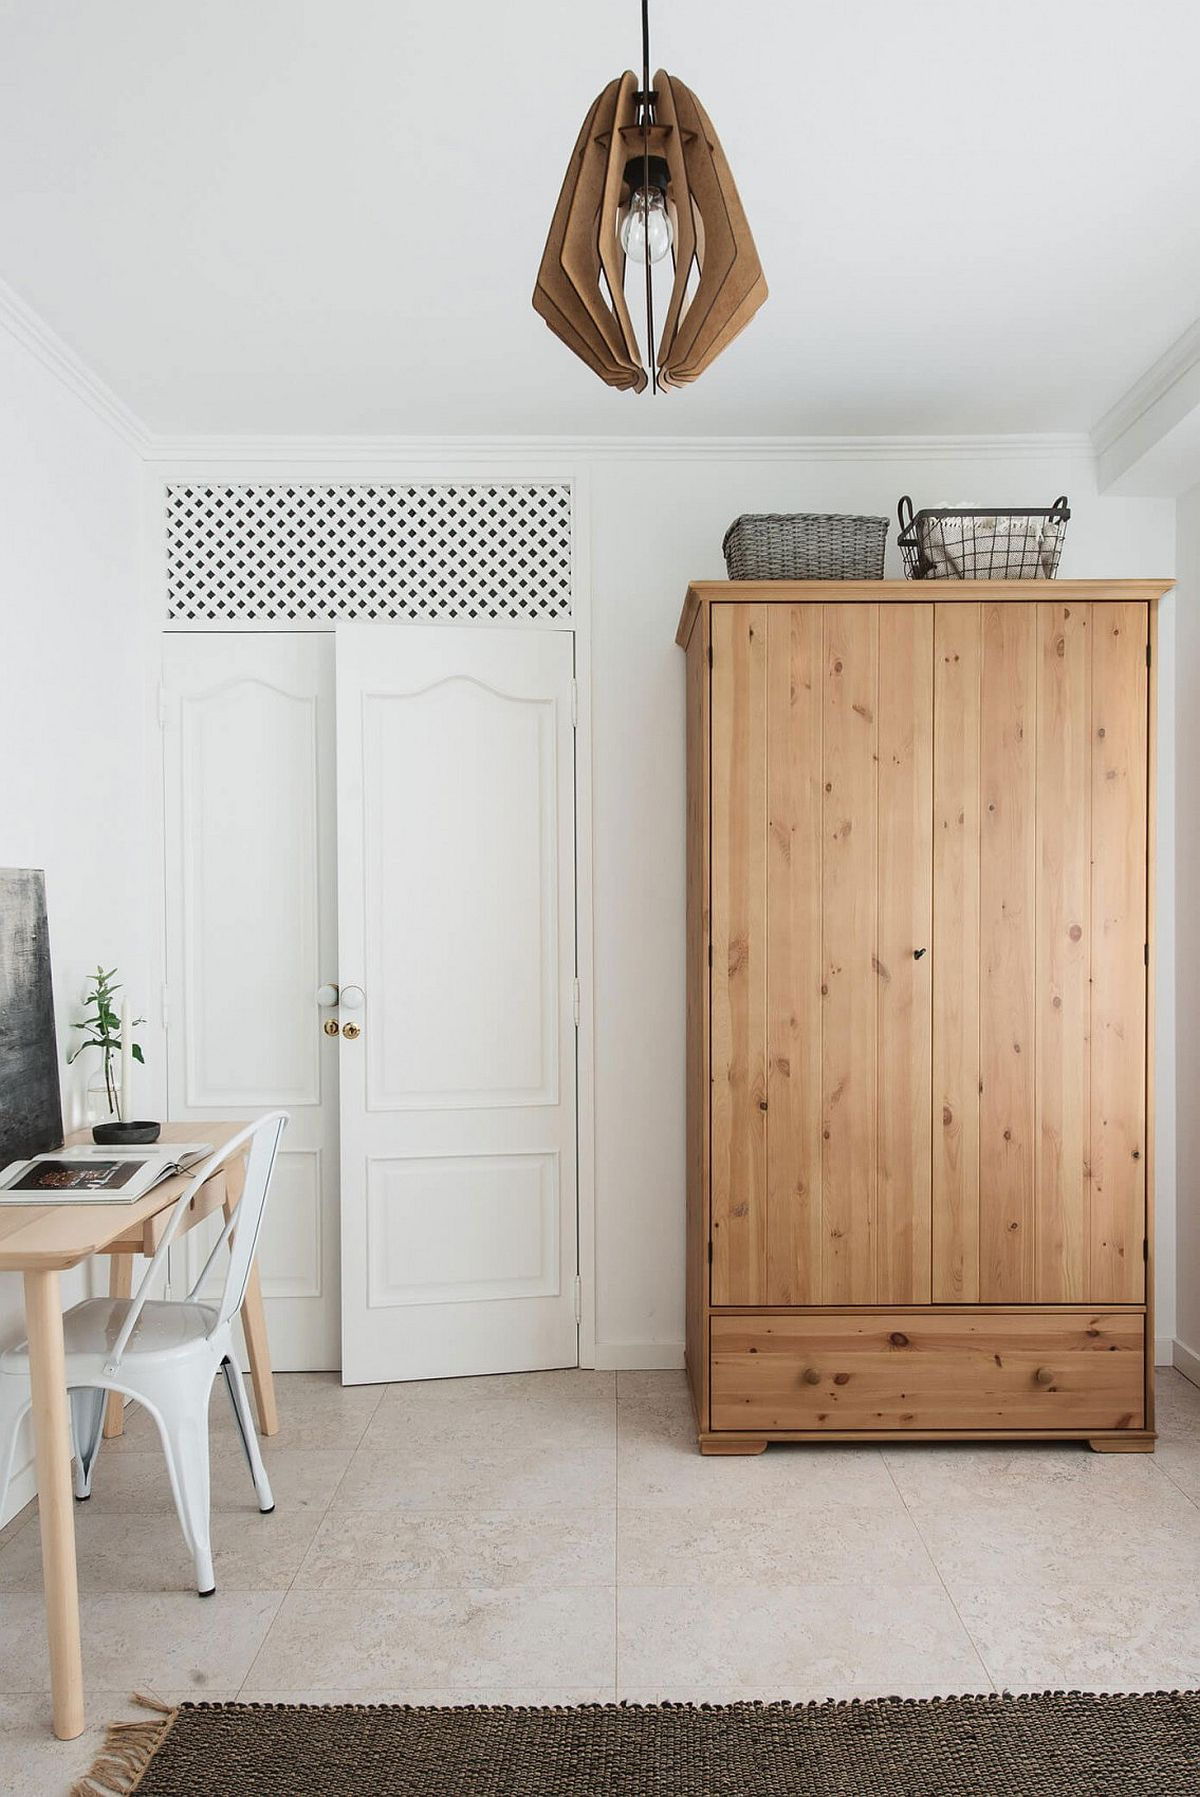 Bedroom workspace and wooden wardrobe